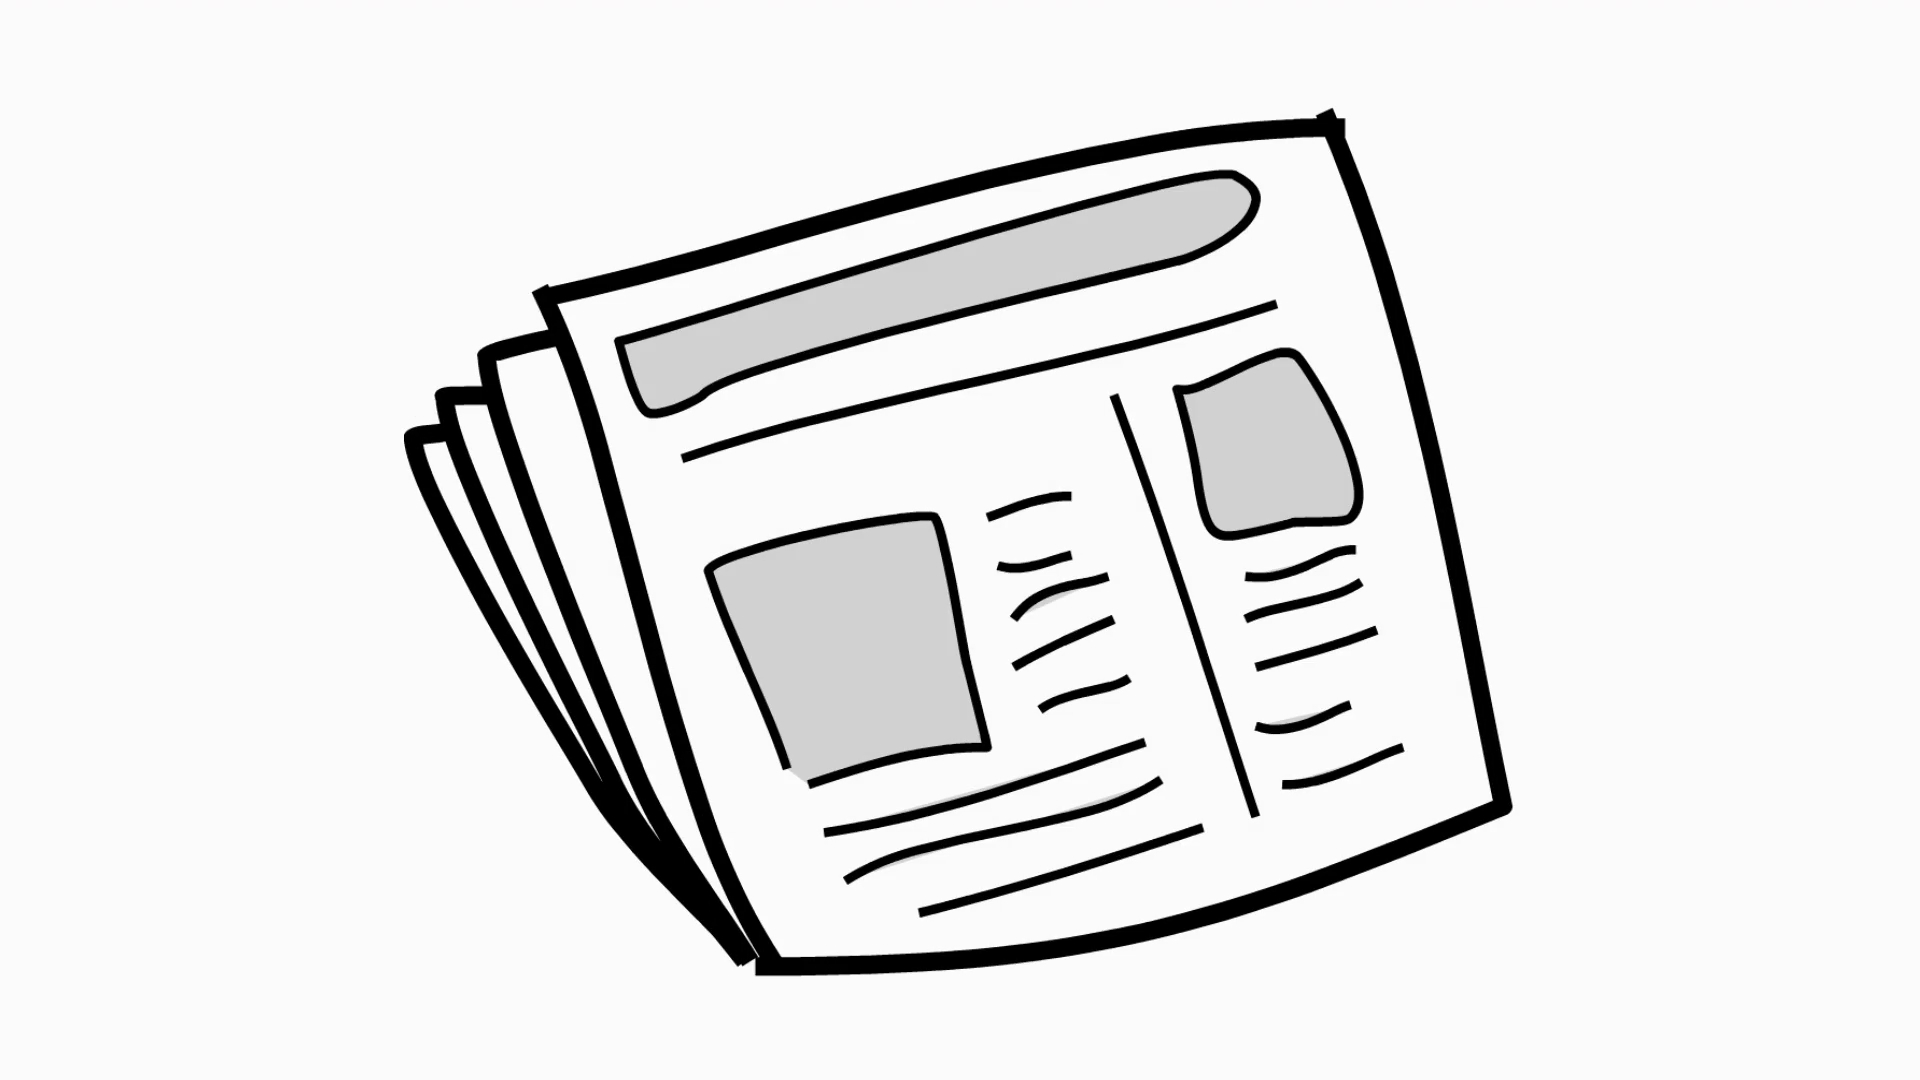 News Paper Line Drawing Illustration Animation With Transparent.